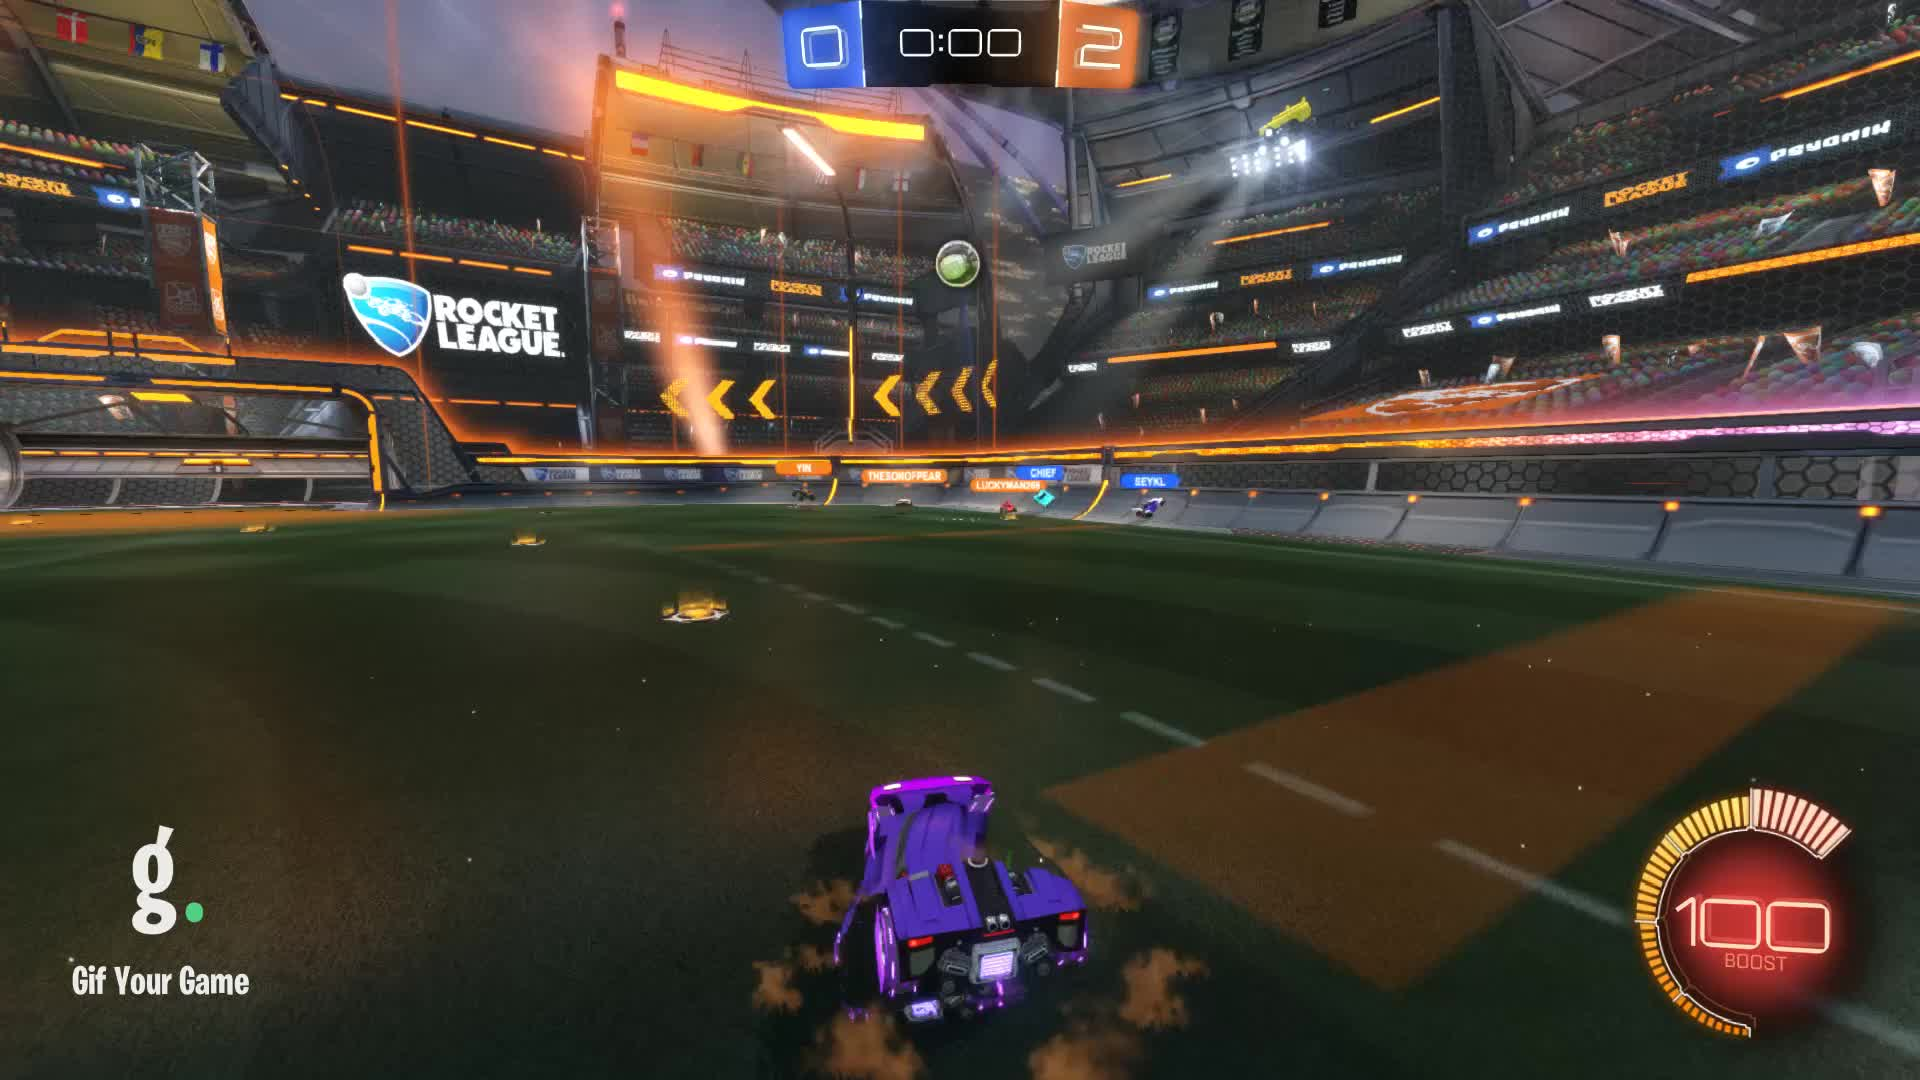 Gif Your Game, GifYourGame, Goal, Rocket League, RocketLeague, Walker, Goal 3: Walker GIFs